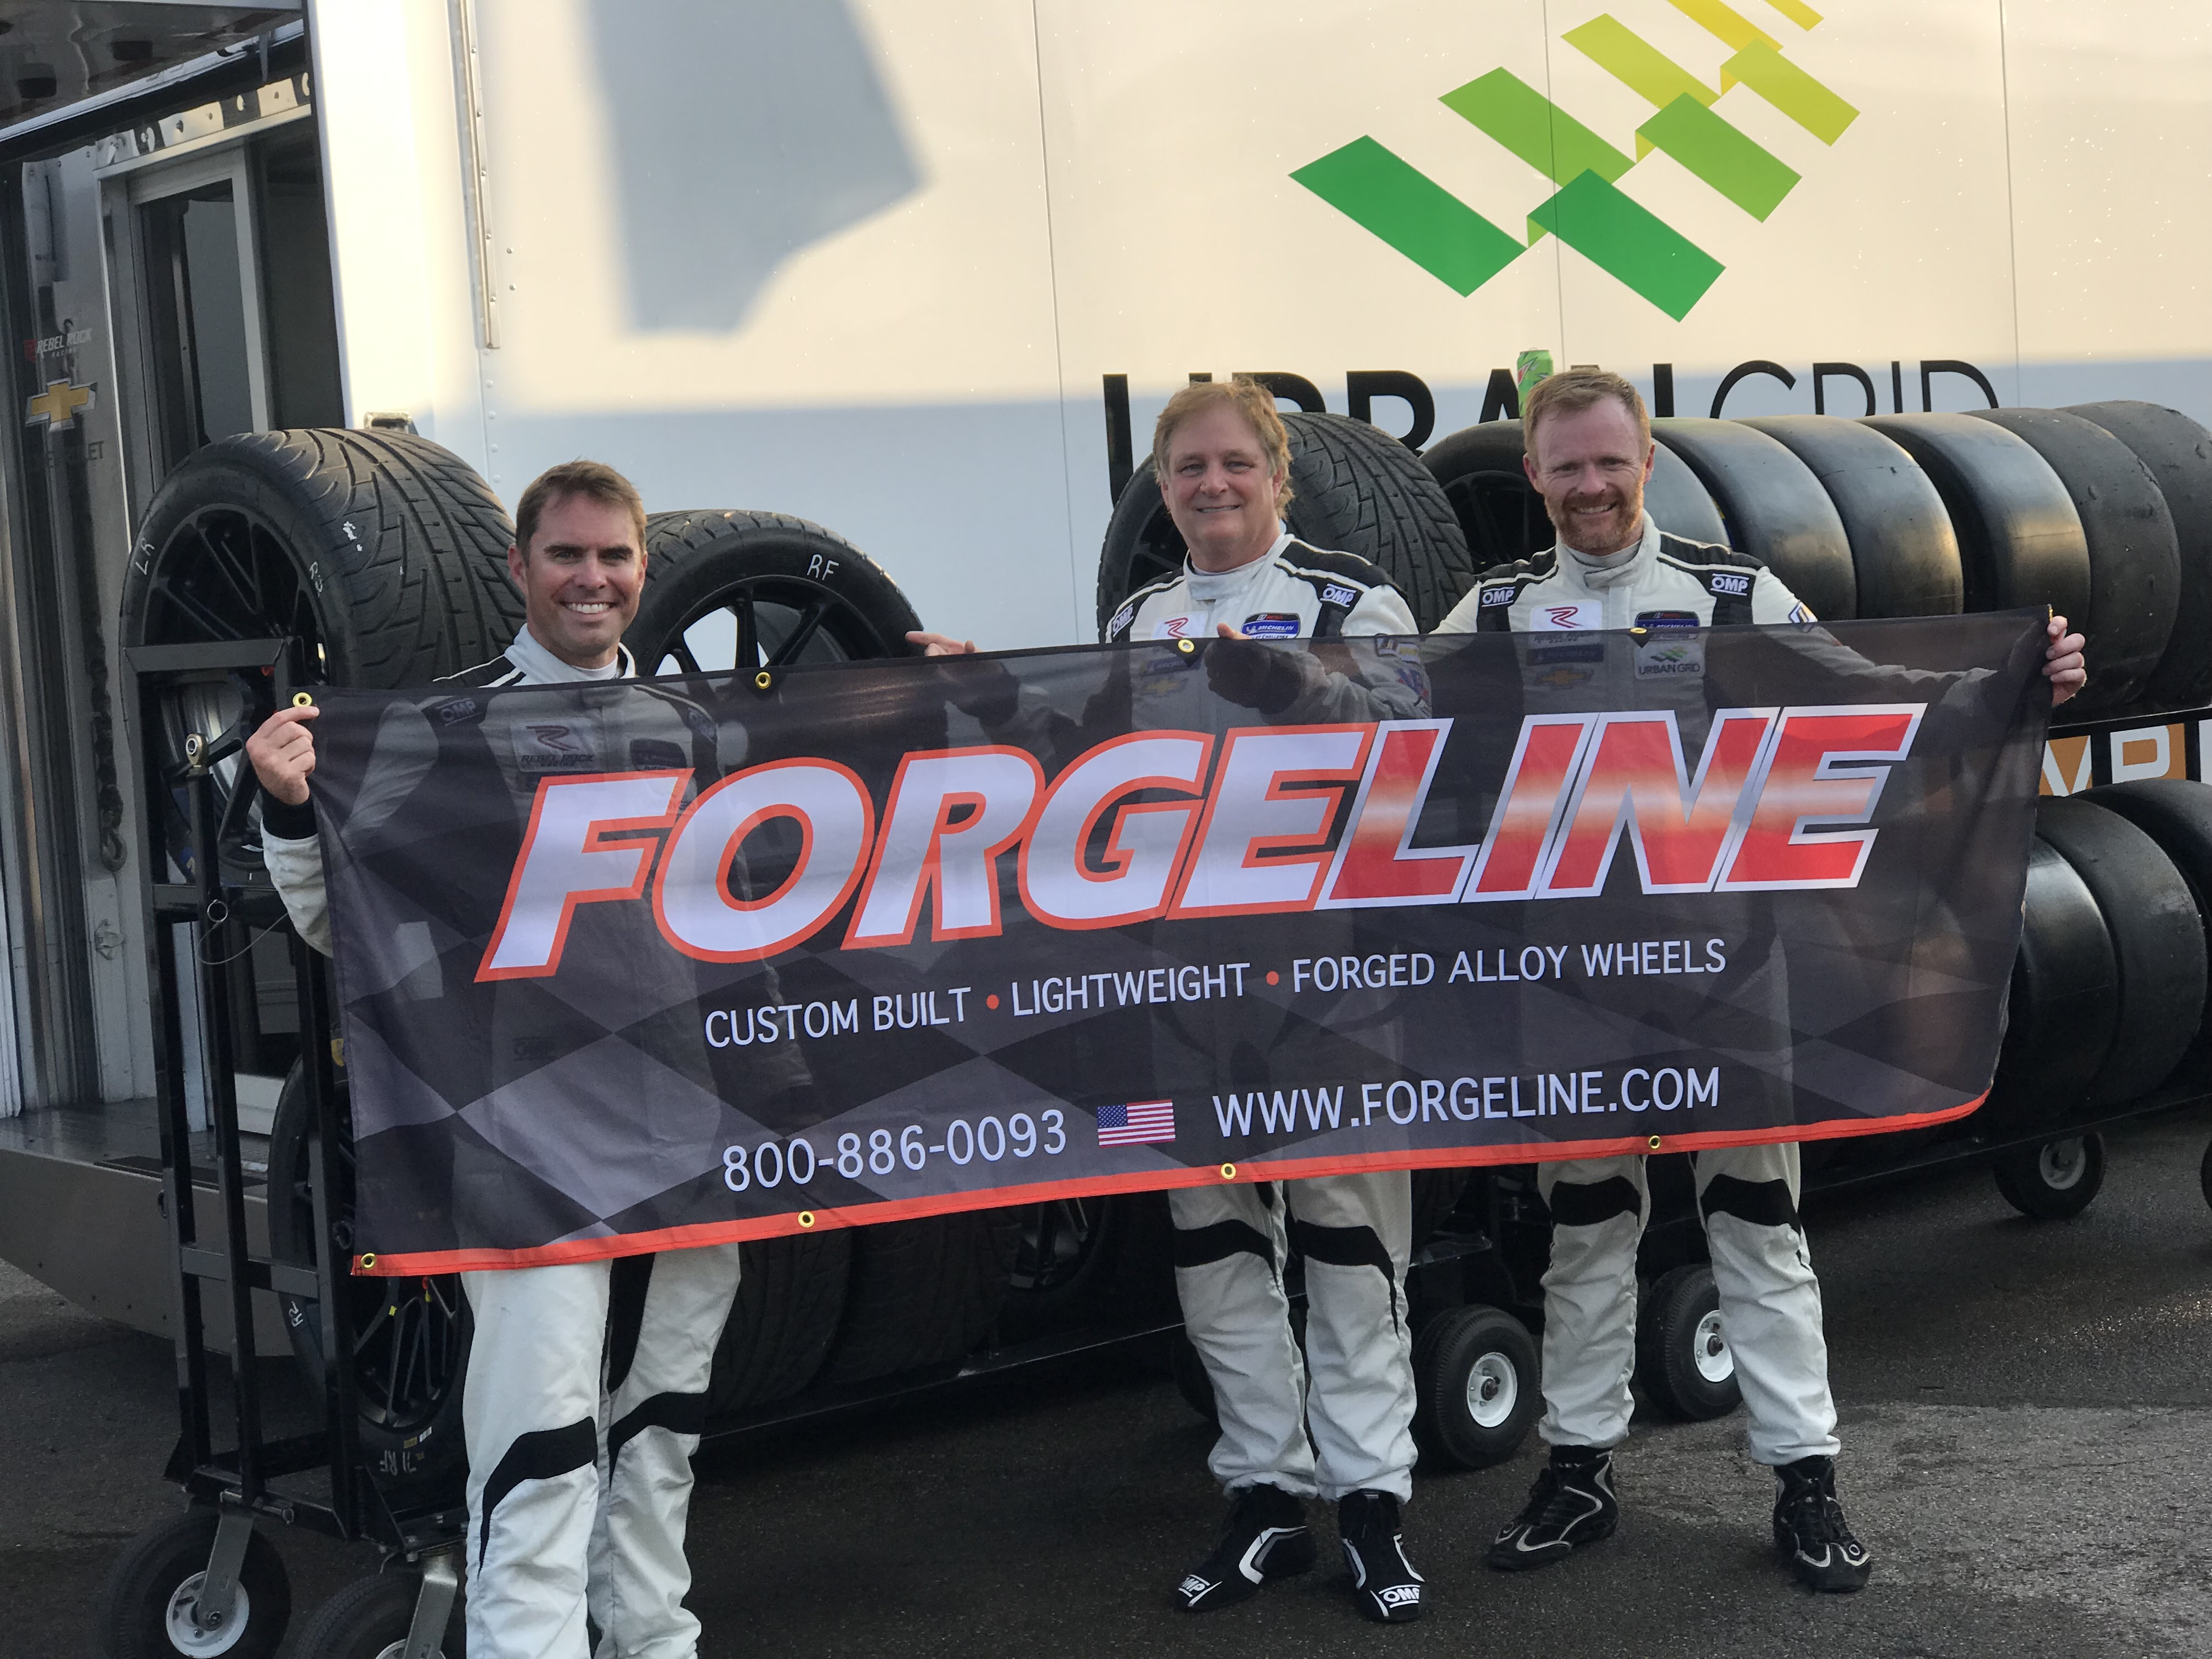 Rebel Rock Racing's DePew, Davis, and Liddell win Forgeline Spirit of the Race at Watkins Glen